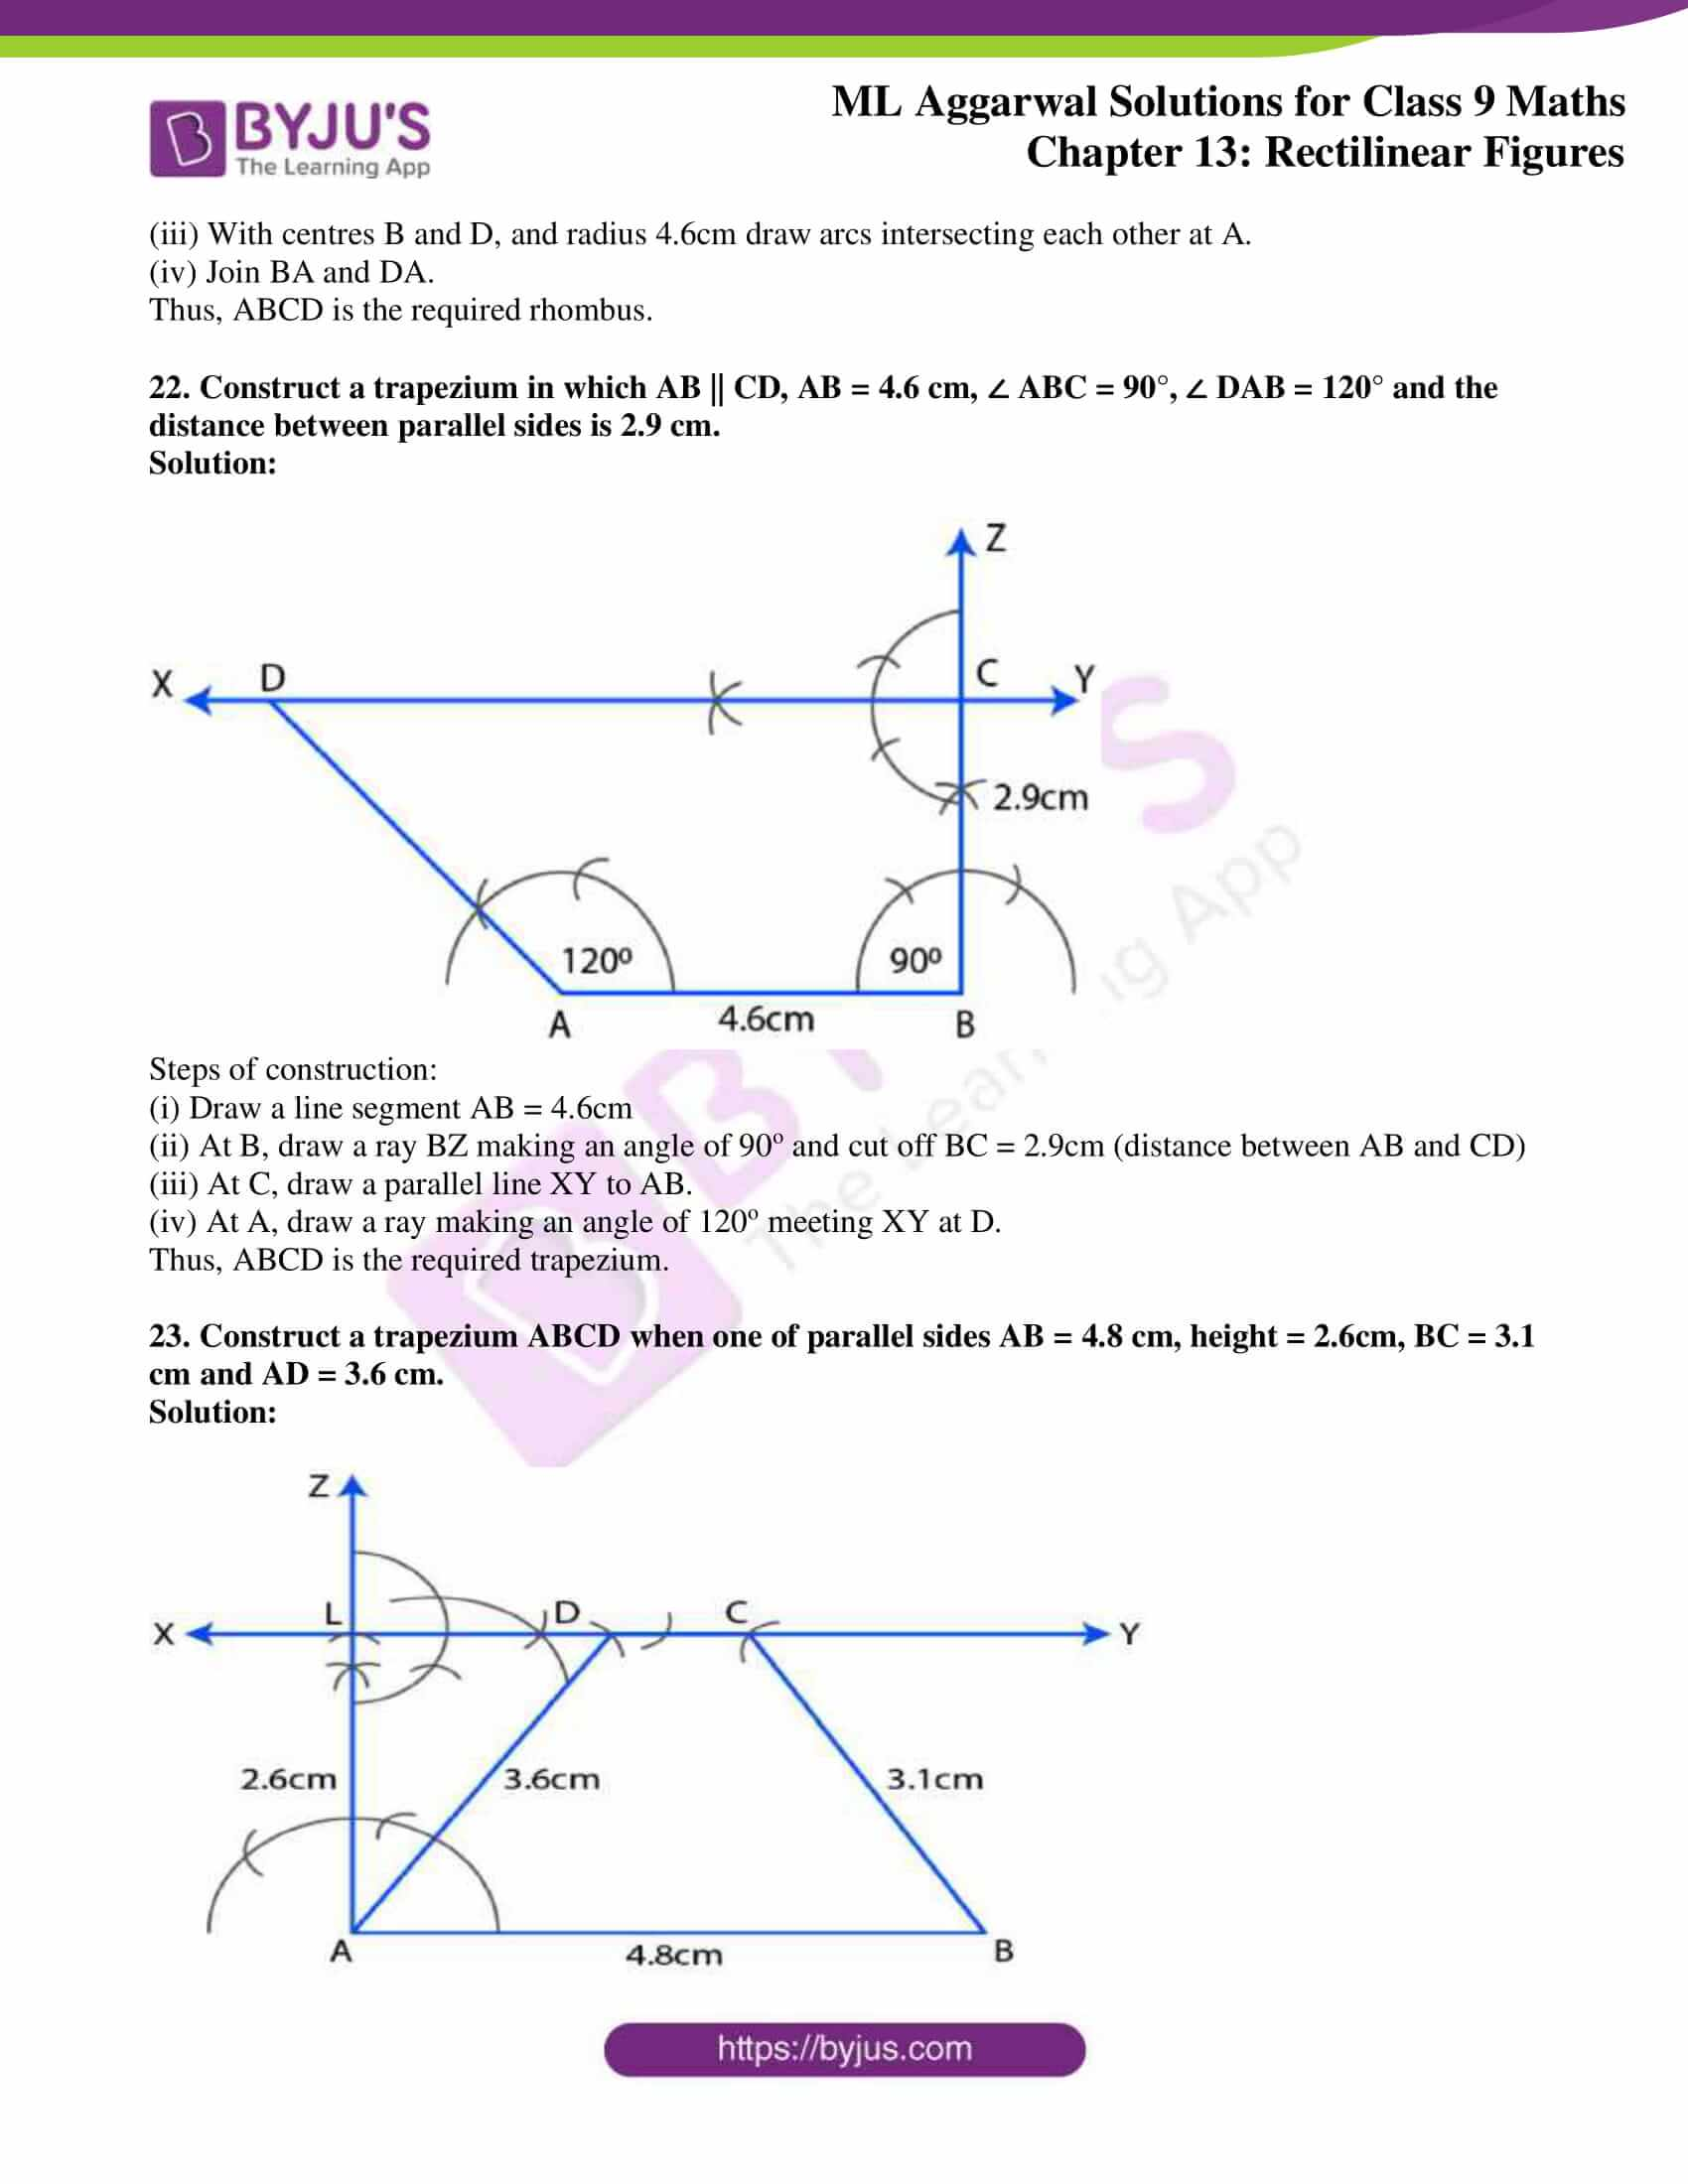 ml aggarwal solutions for class 9 maths chapter 13 37